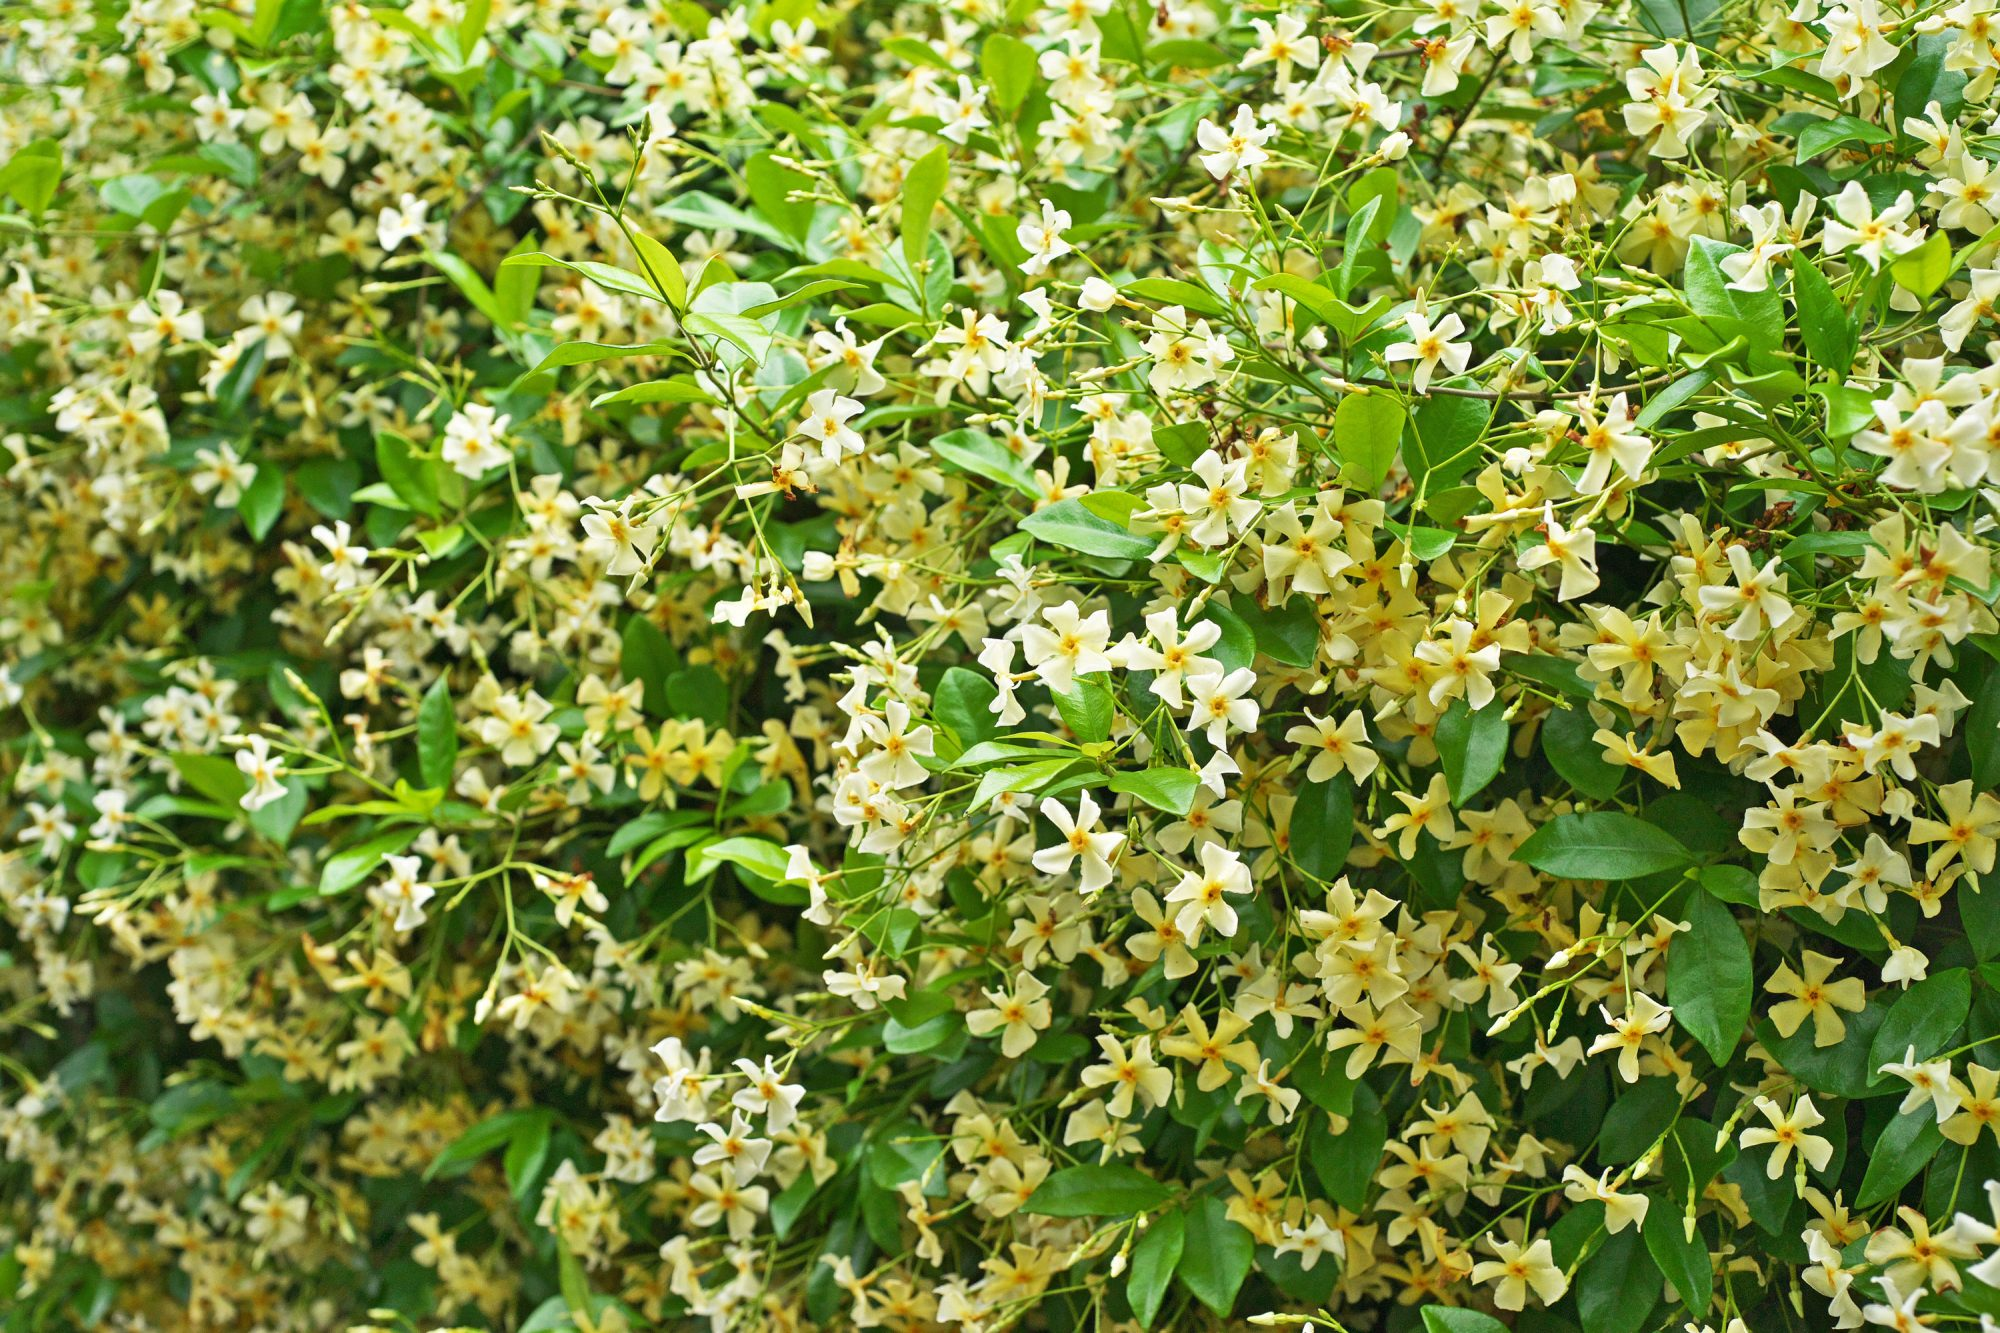 Asian star jasmine (Trachelospermum asiaticum)